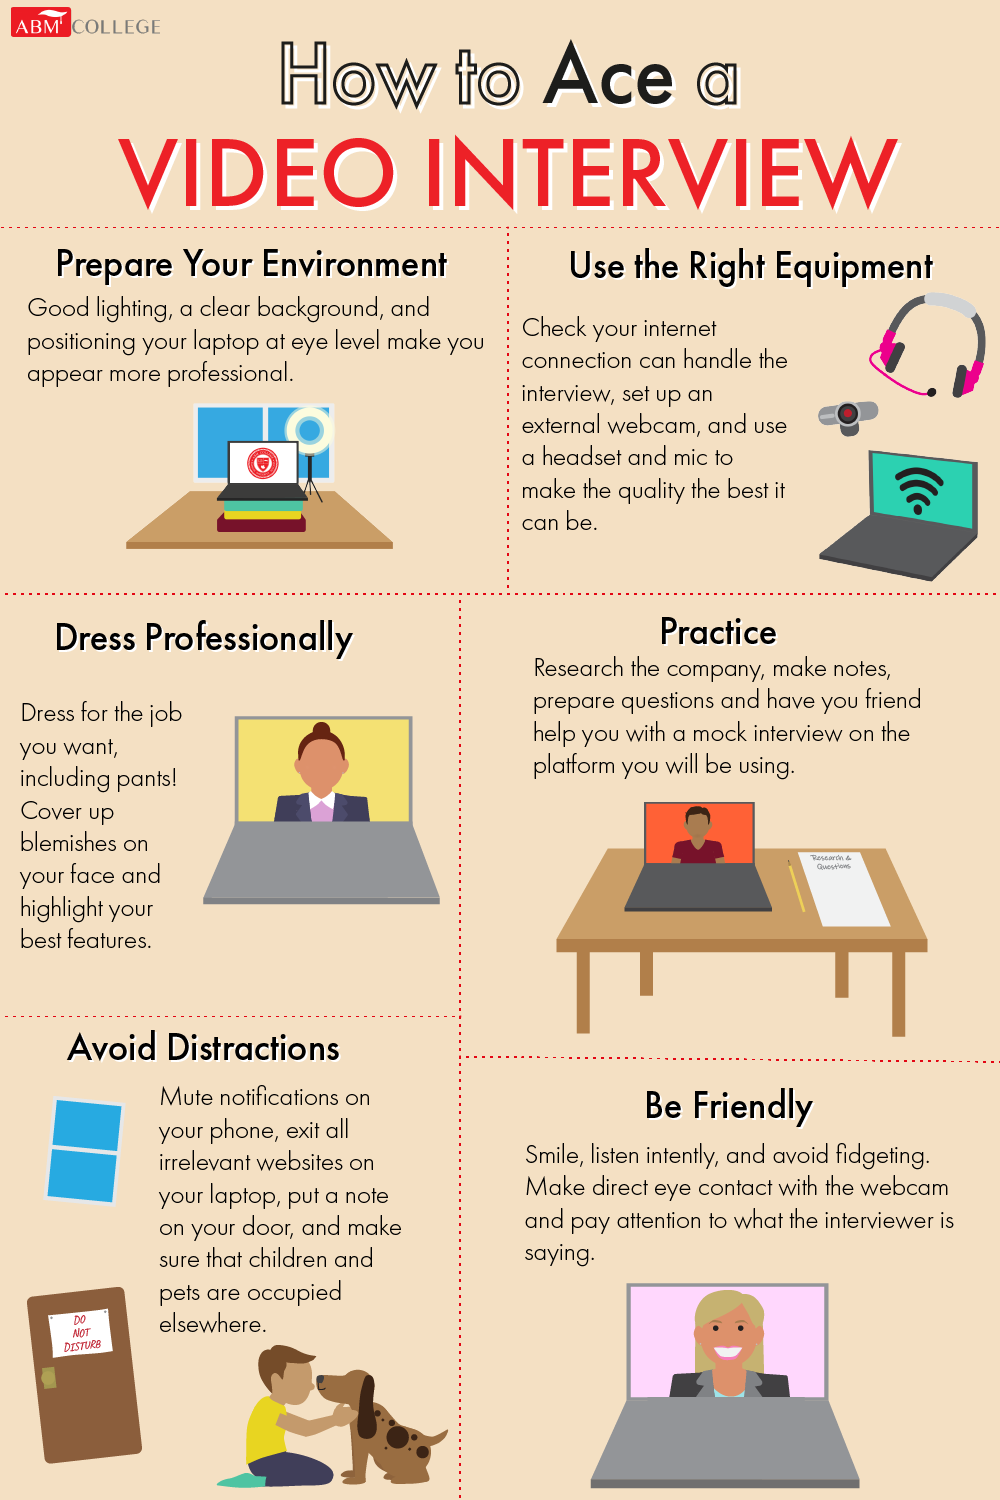 6 tips on how to ace video interview